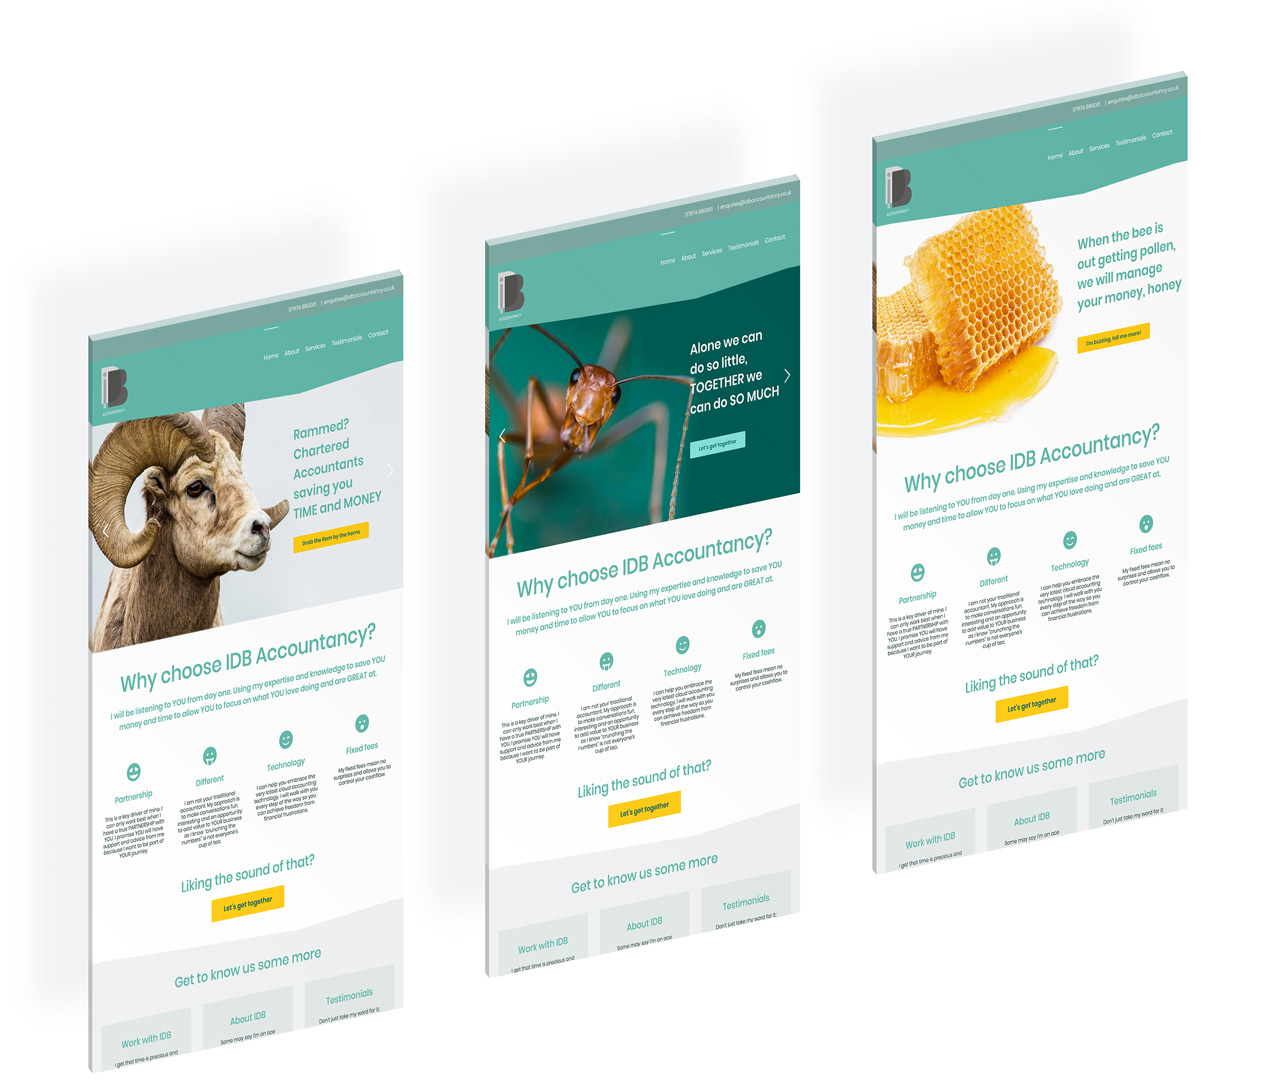 Branding and Website Design in London for IDB Accountancy, Derby